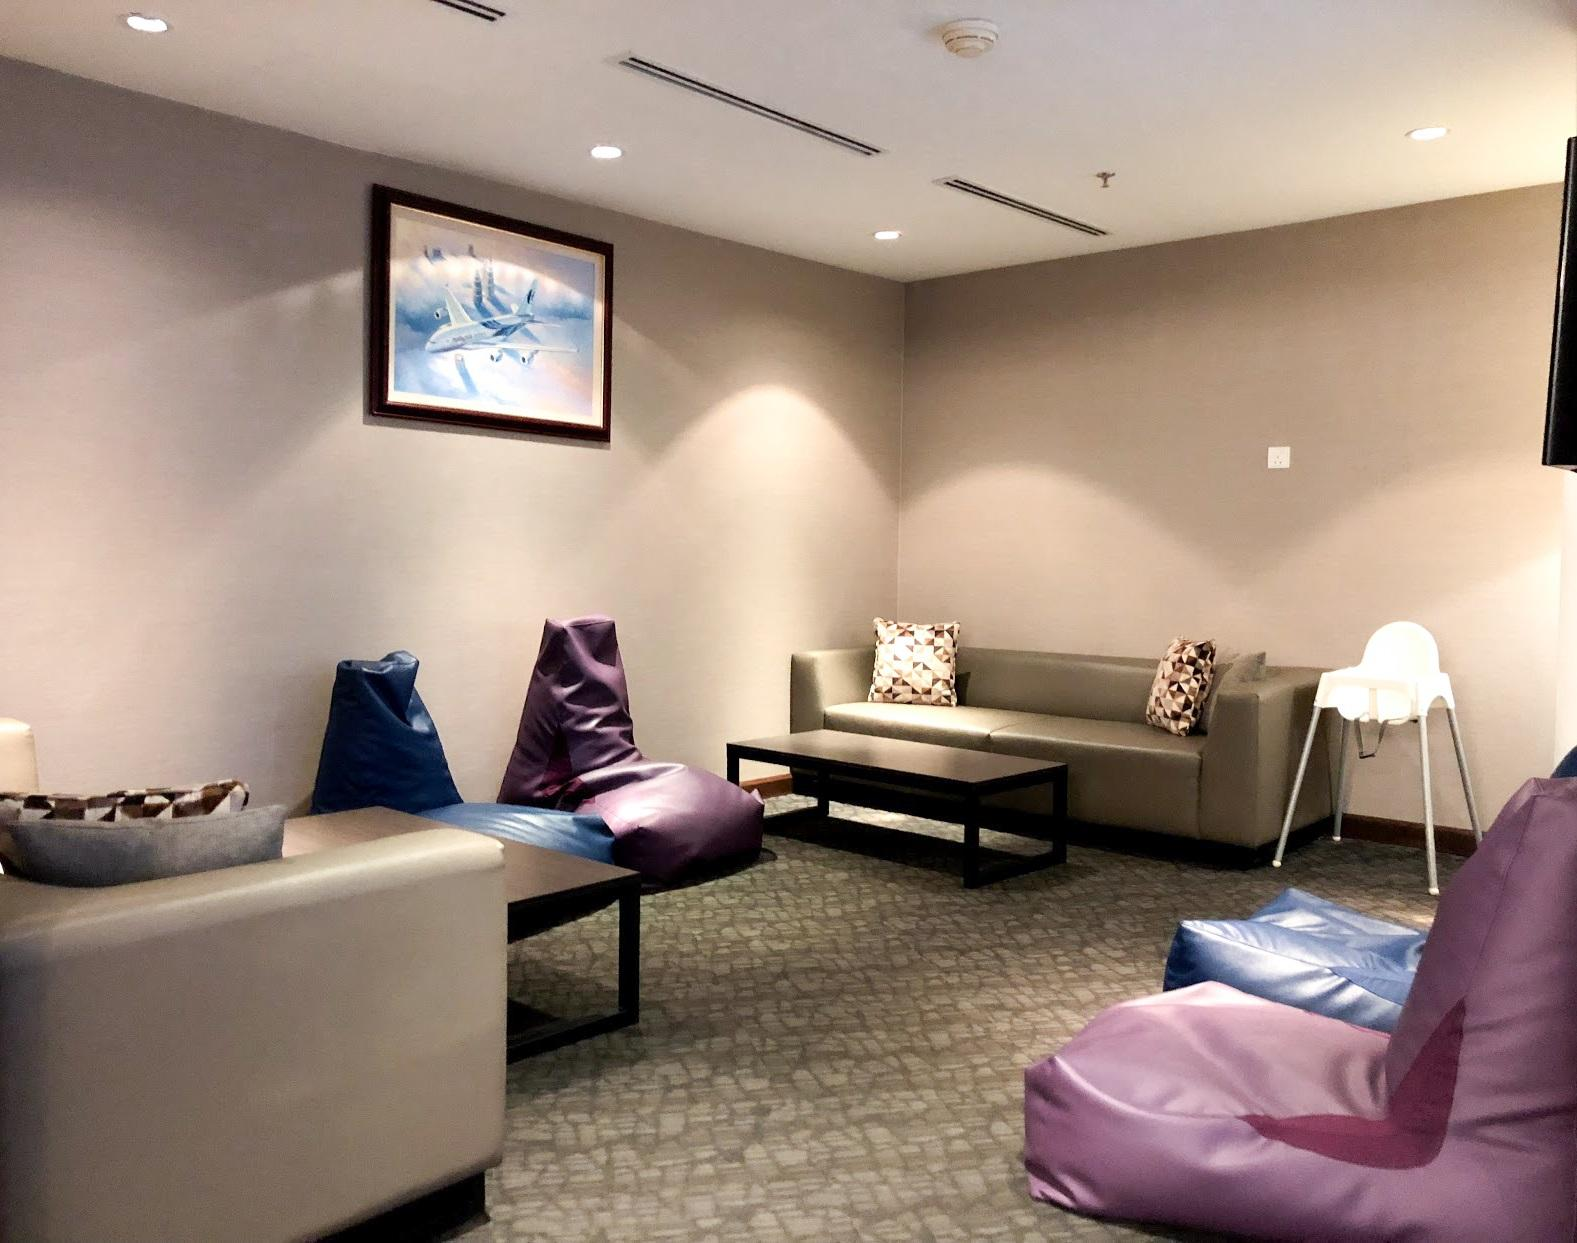 Malaysia Airlines Domestic Golden Lounge Kuala Lumpur family room